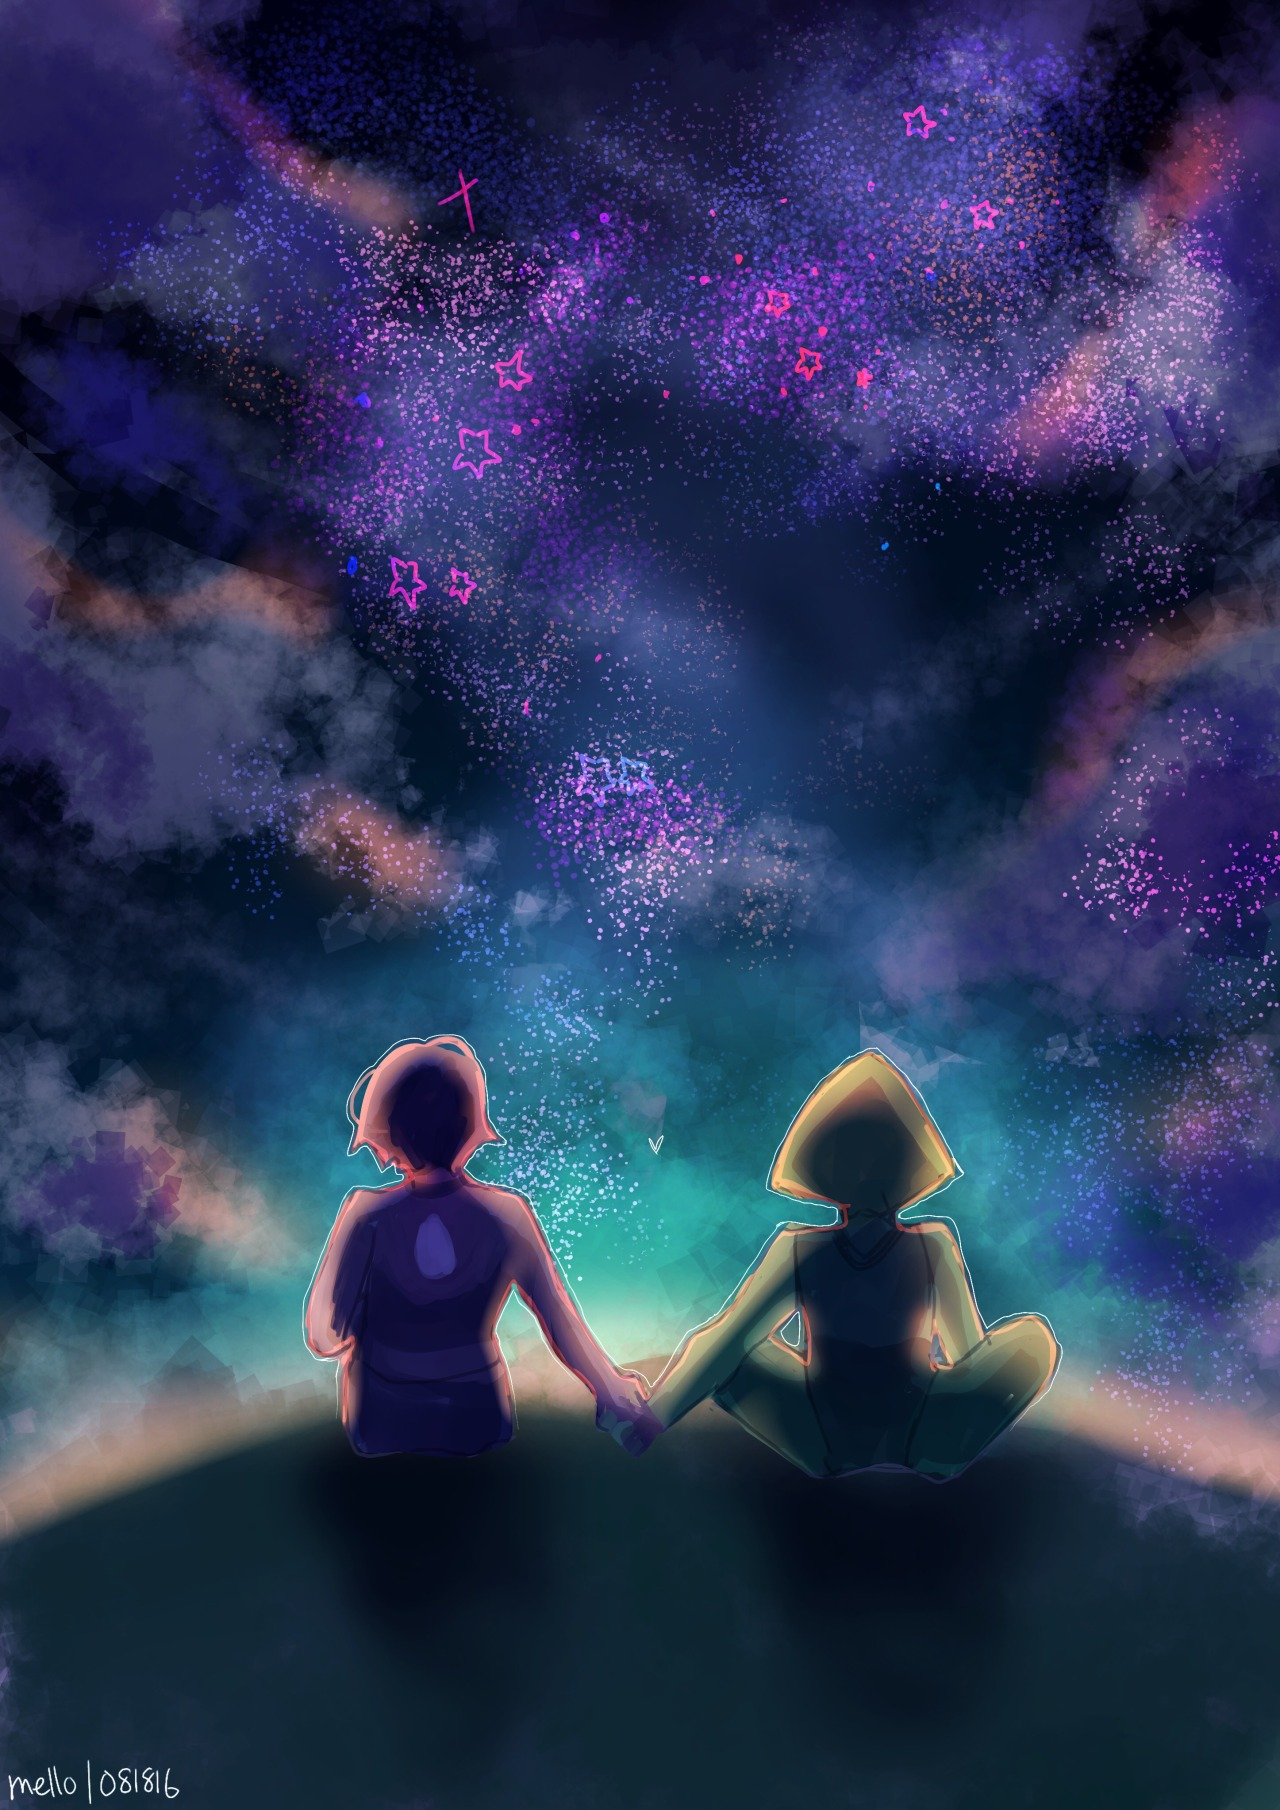 For lapidot week!! Day 3: stargazing